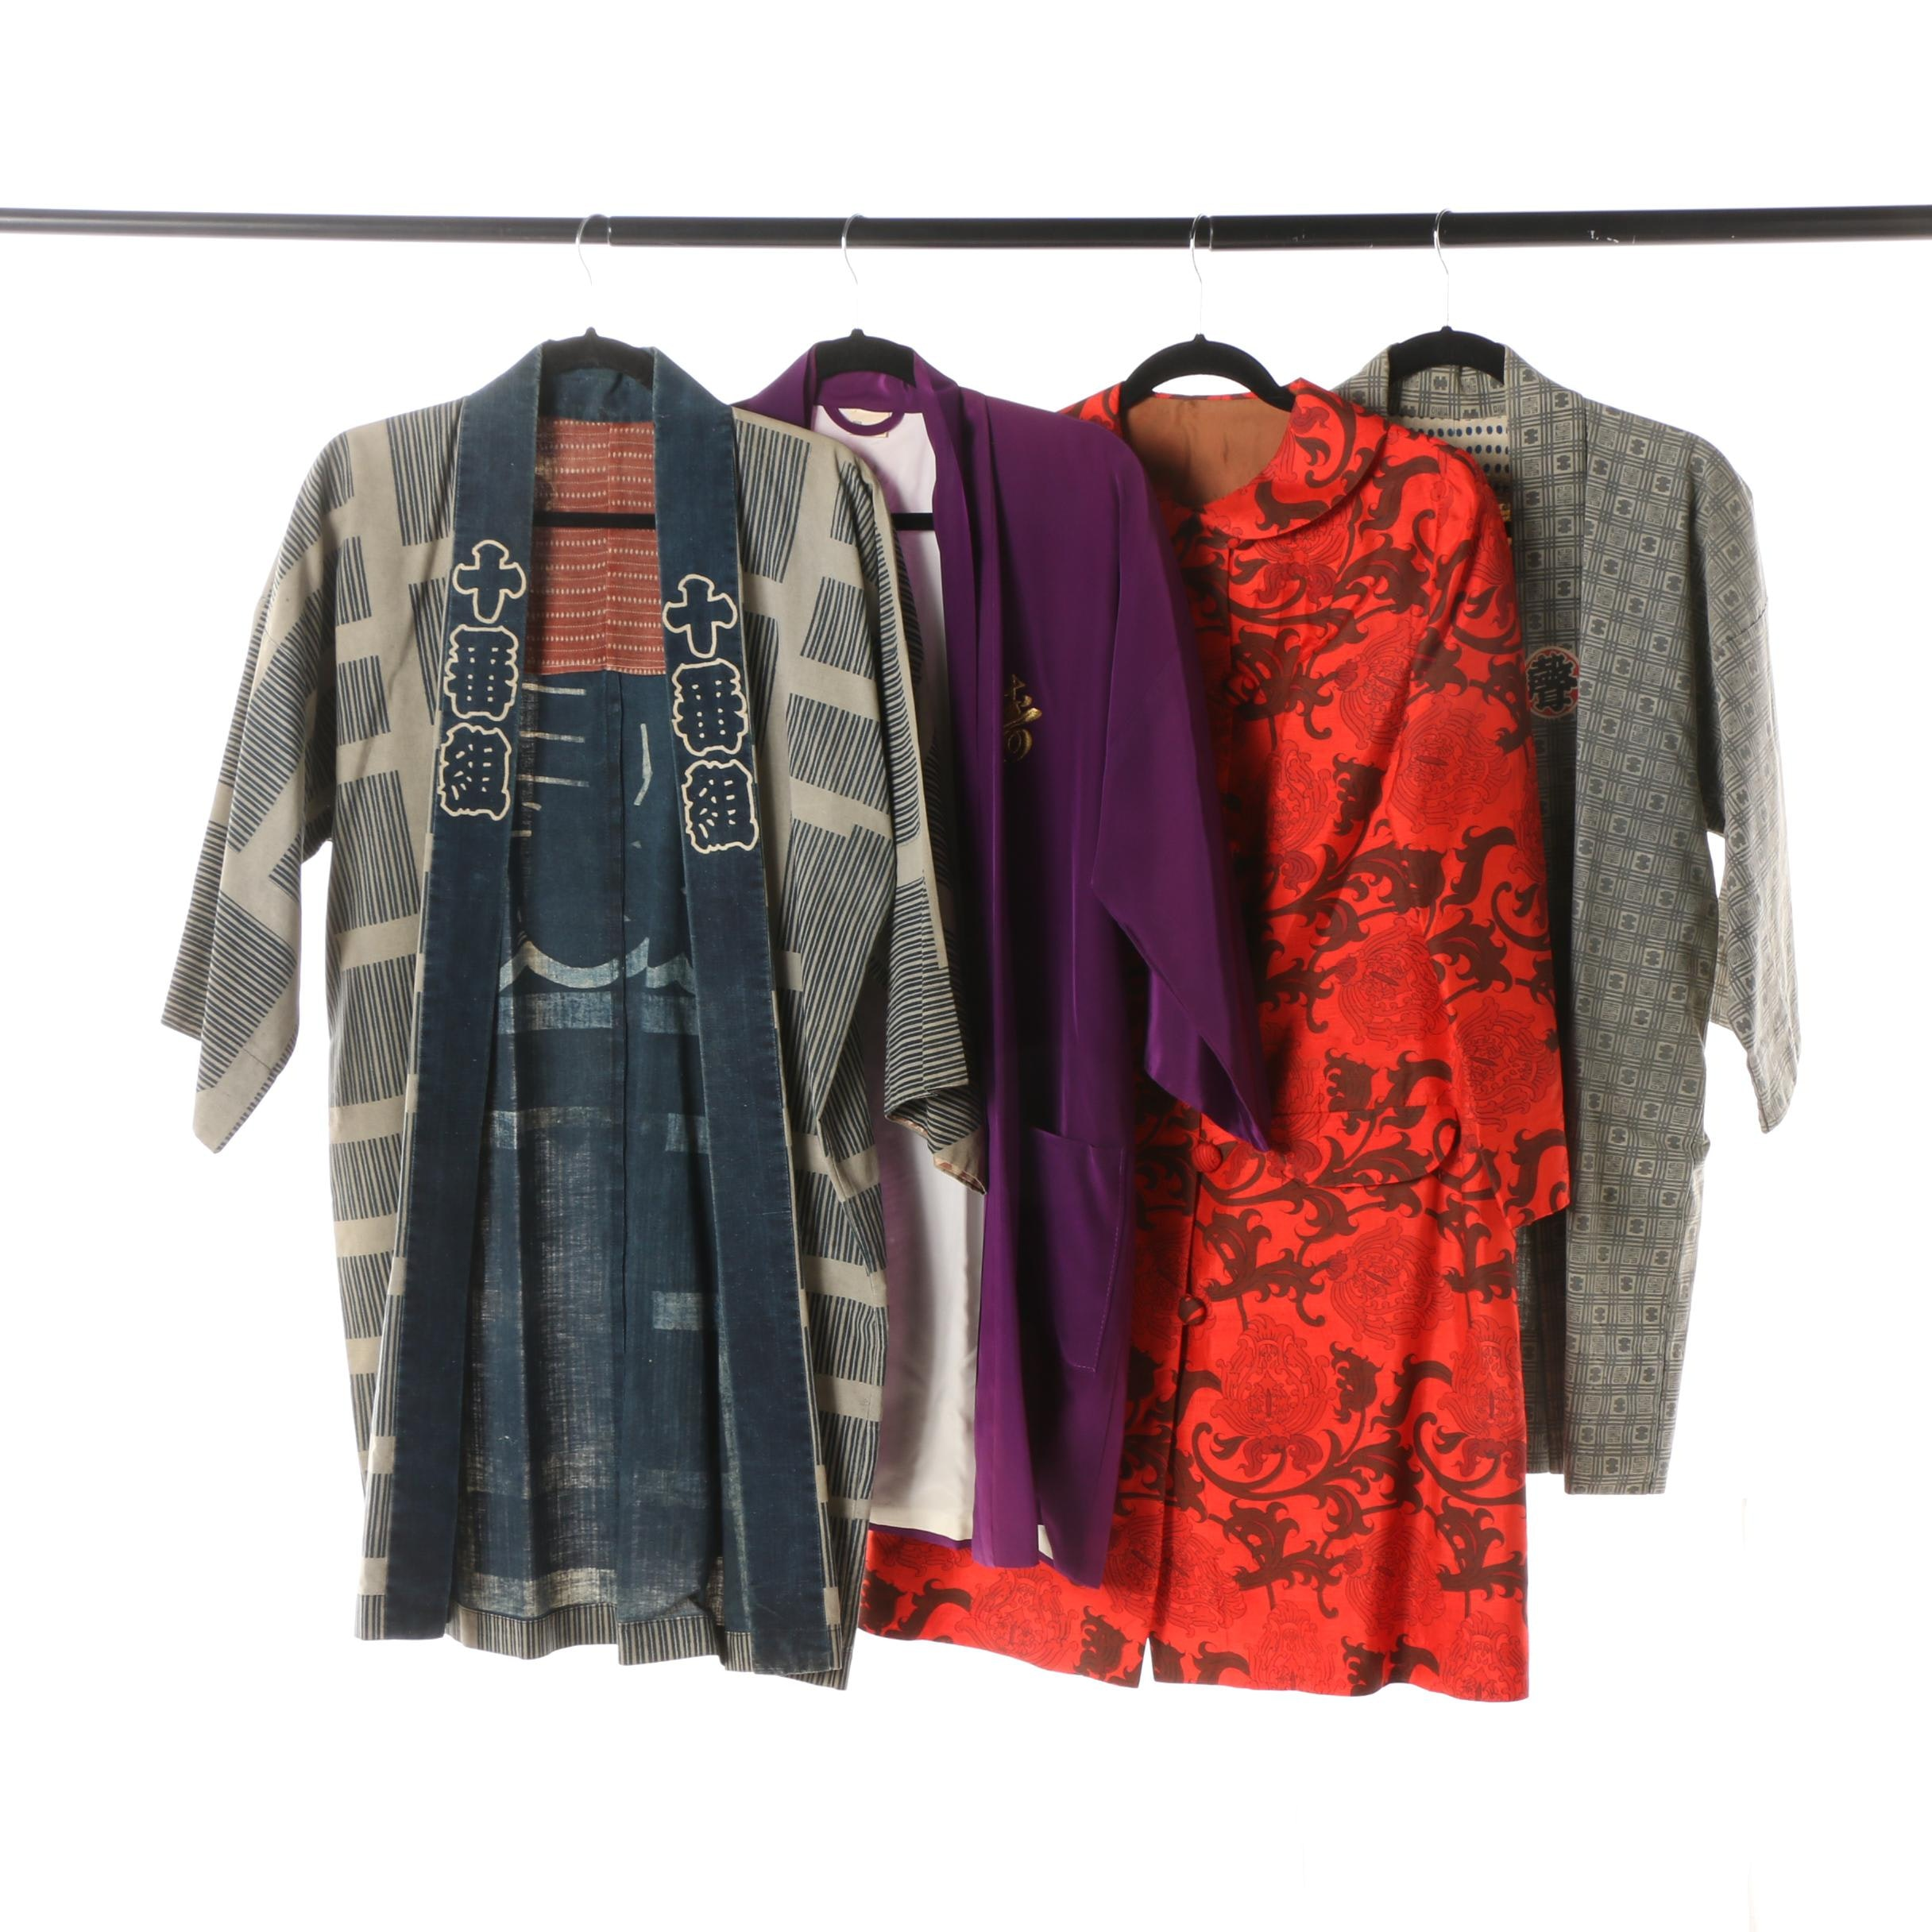 Japanese Cotton Happi Coats, Haori Style Jacket and Red Flowering Arabesque Coat